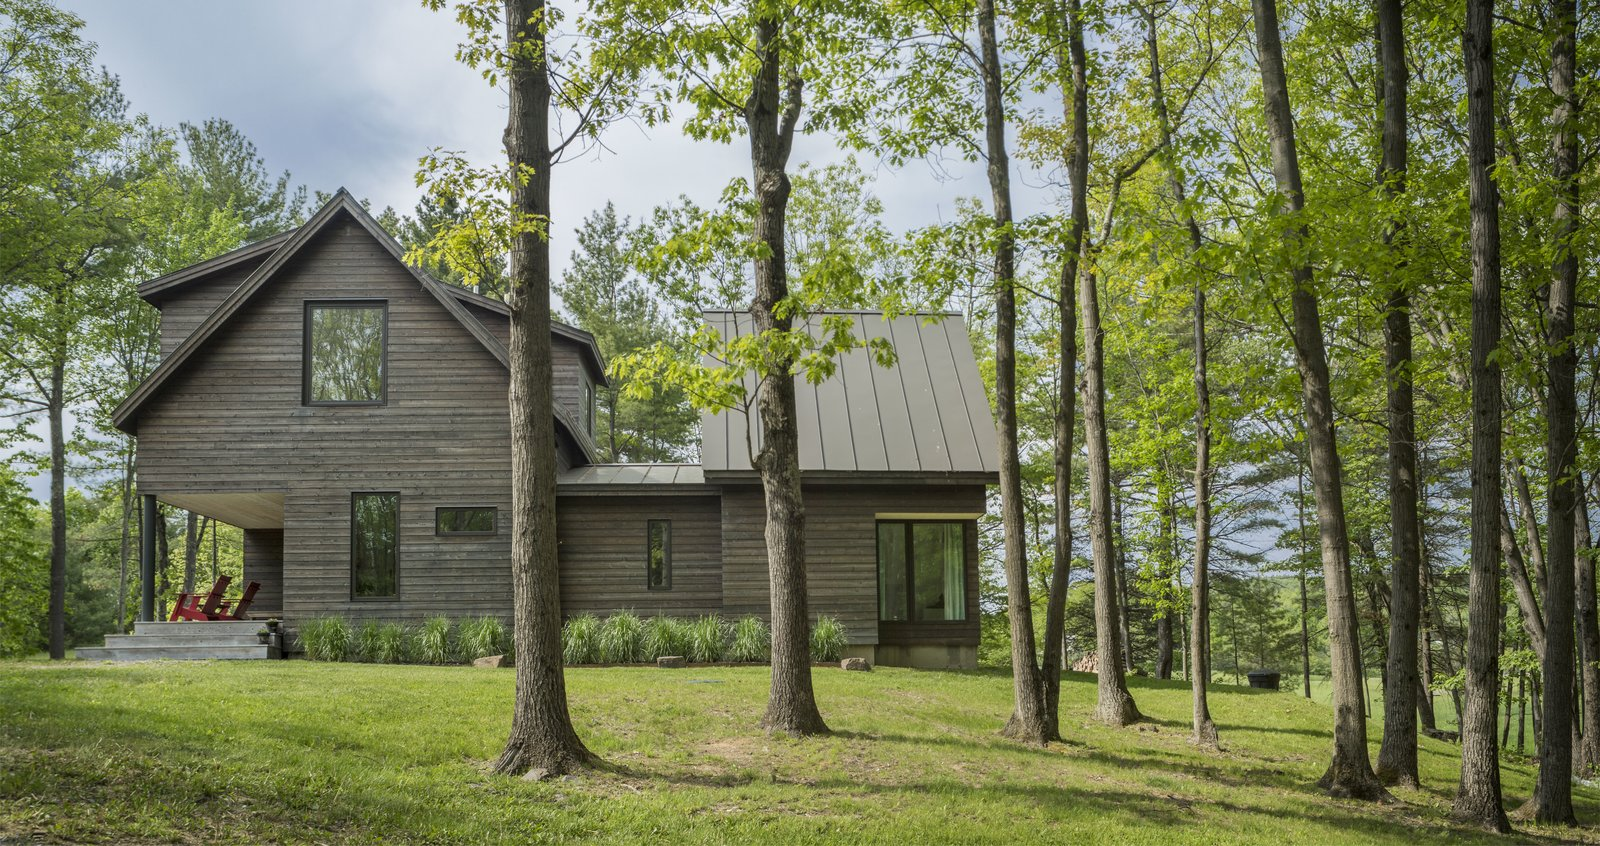 Exterior, Metal Roof Material, House Building Type, Gable RoofLine, and Wood Siding Material  Knoll House by Elizabeth Herrmann Architecture + Design